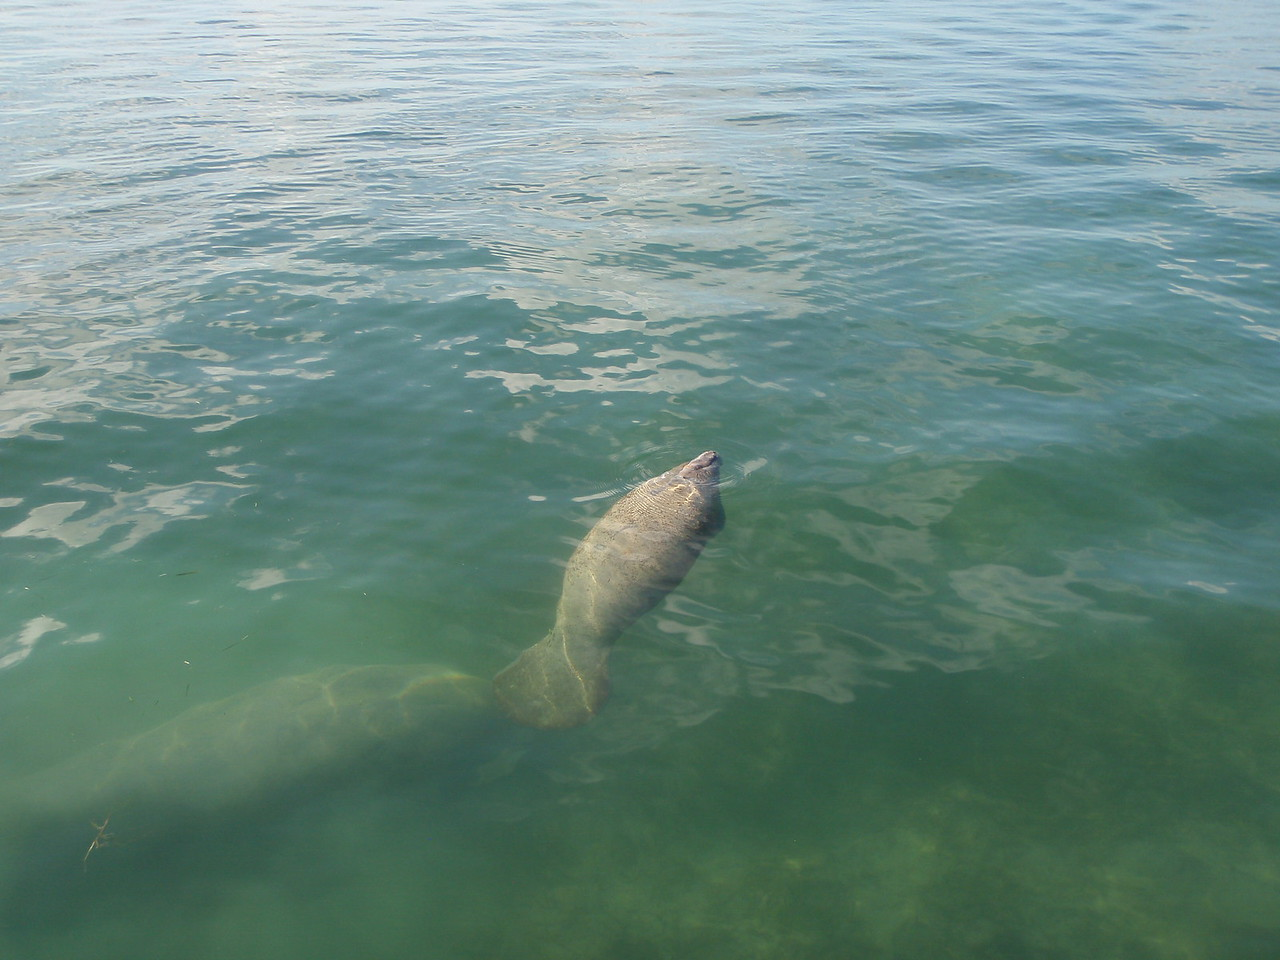 After our sailing excursion ended we walked out on the dock and found some manatees